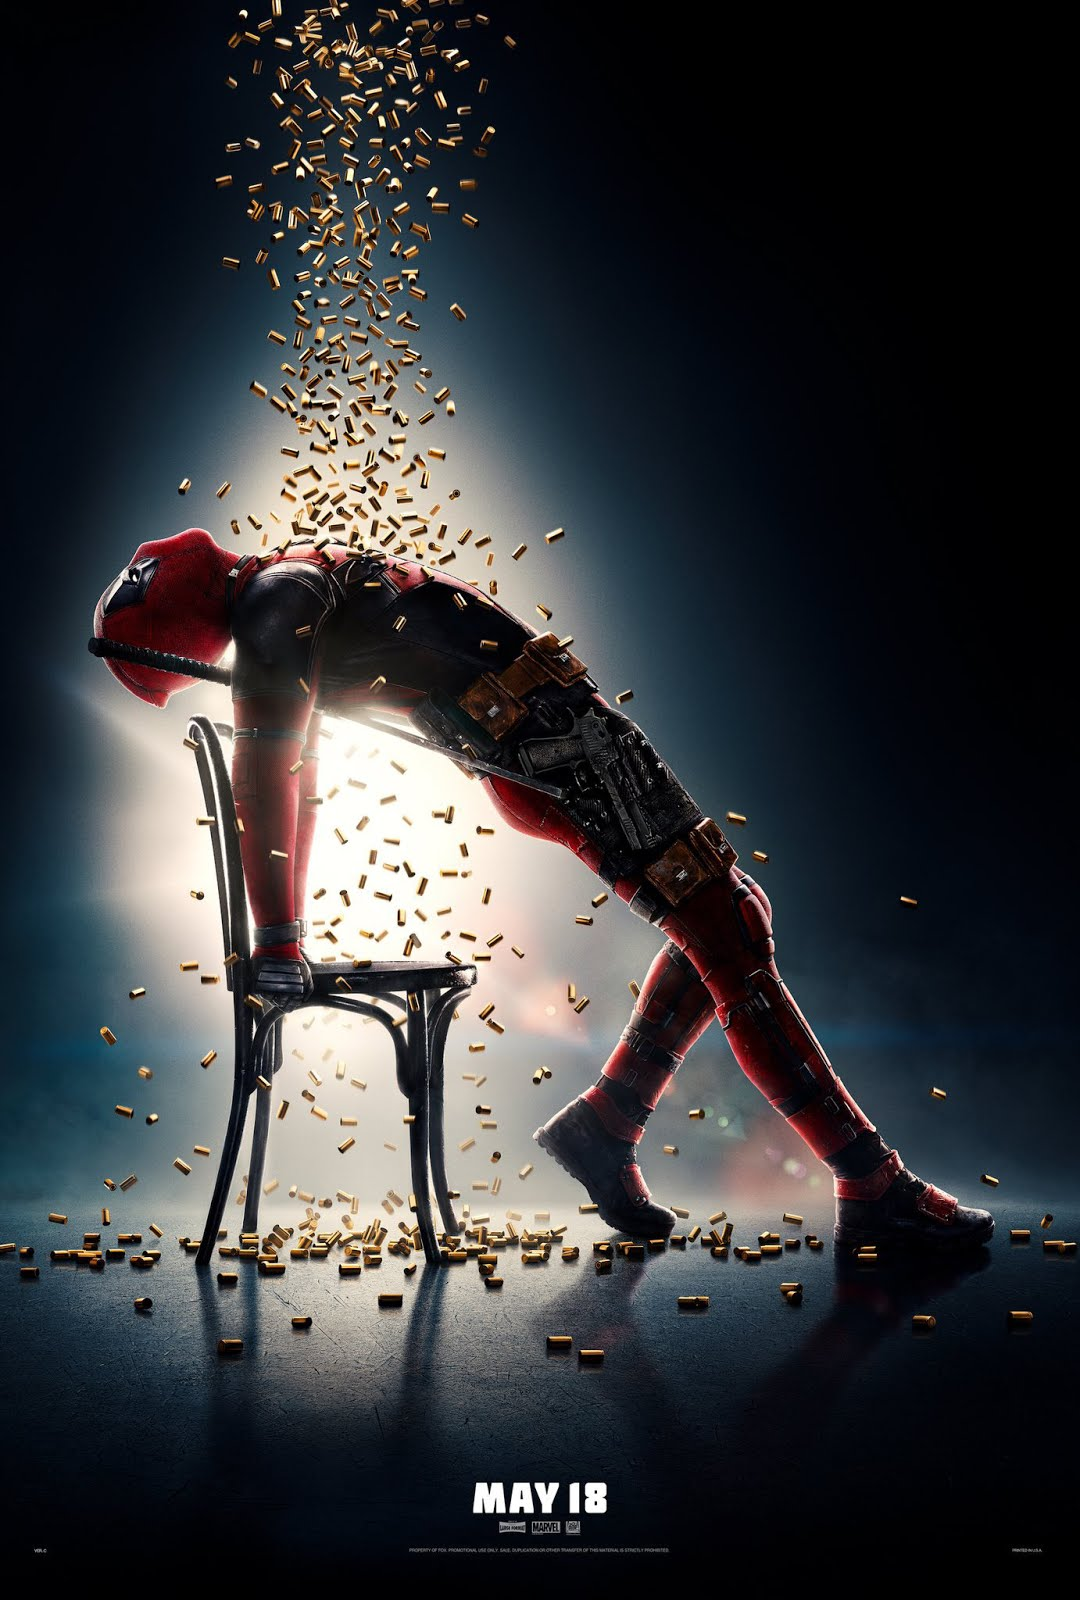 Deadpool 2 (2018) Hindi Dubbed 720p HDCAM-Rip x264 1GB